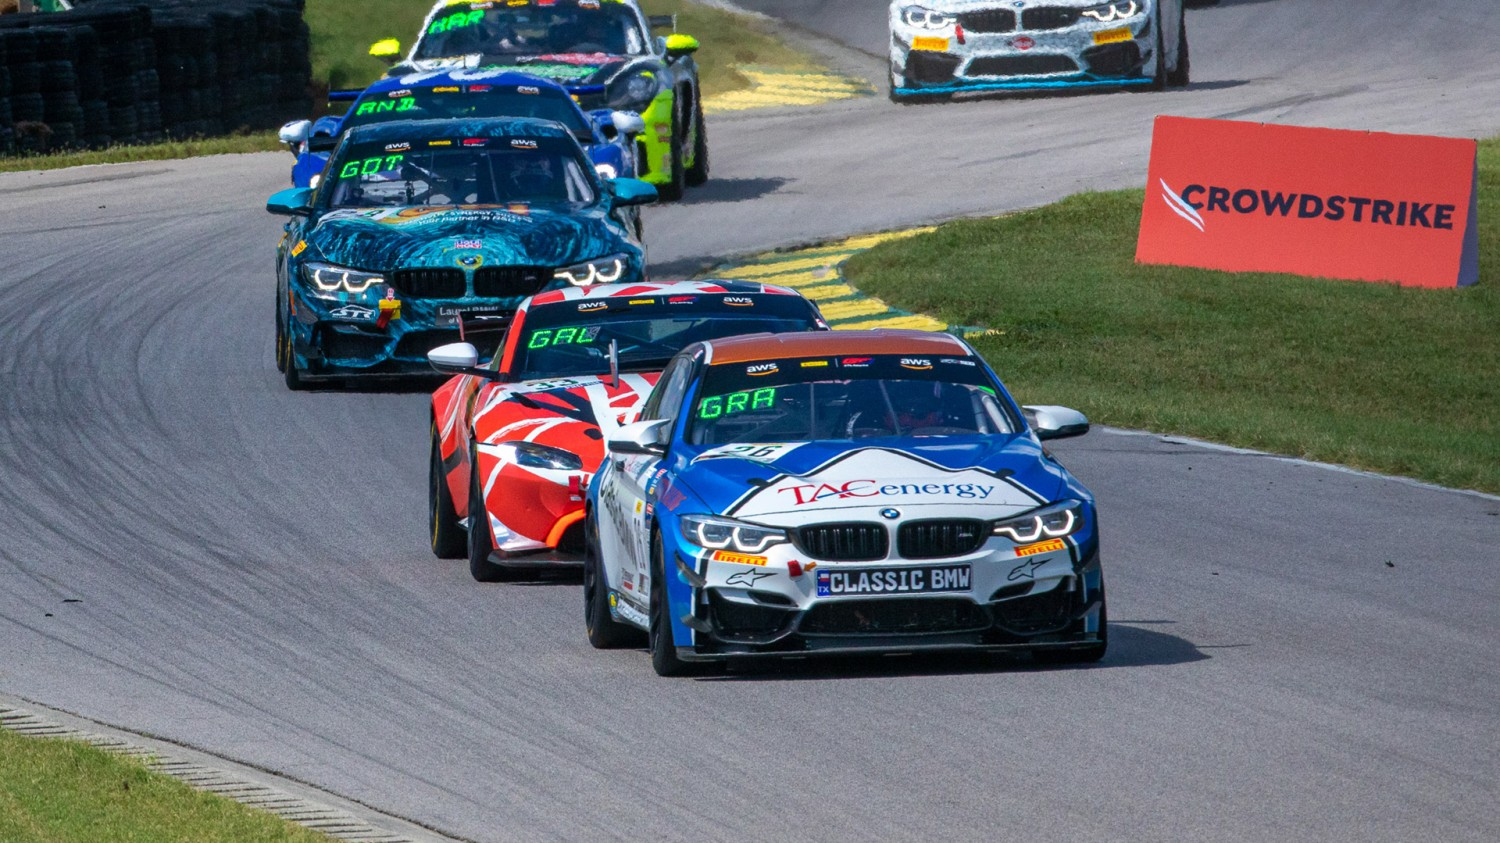 Chandler Hull, Toby Grahovec Seek Another GT4 SprintX Silver Win in VIR-Winning TACEnergy ClassicBMW.com BWM M4 at Sonoma